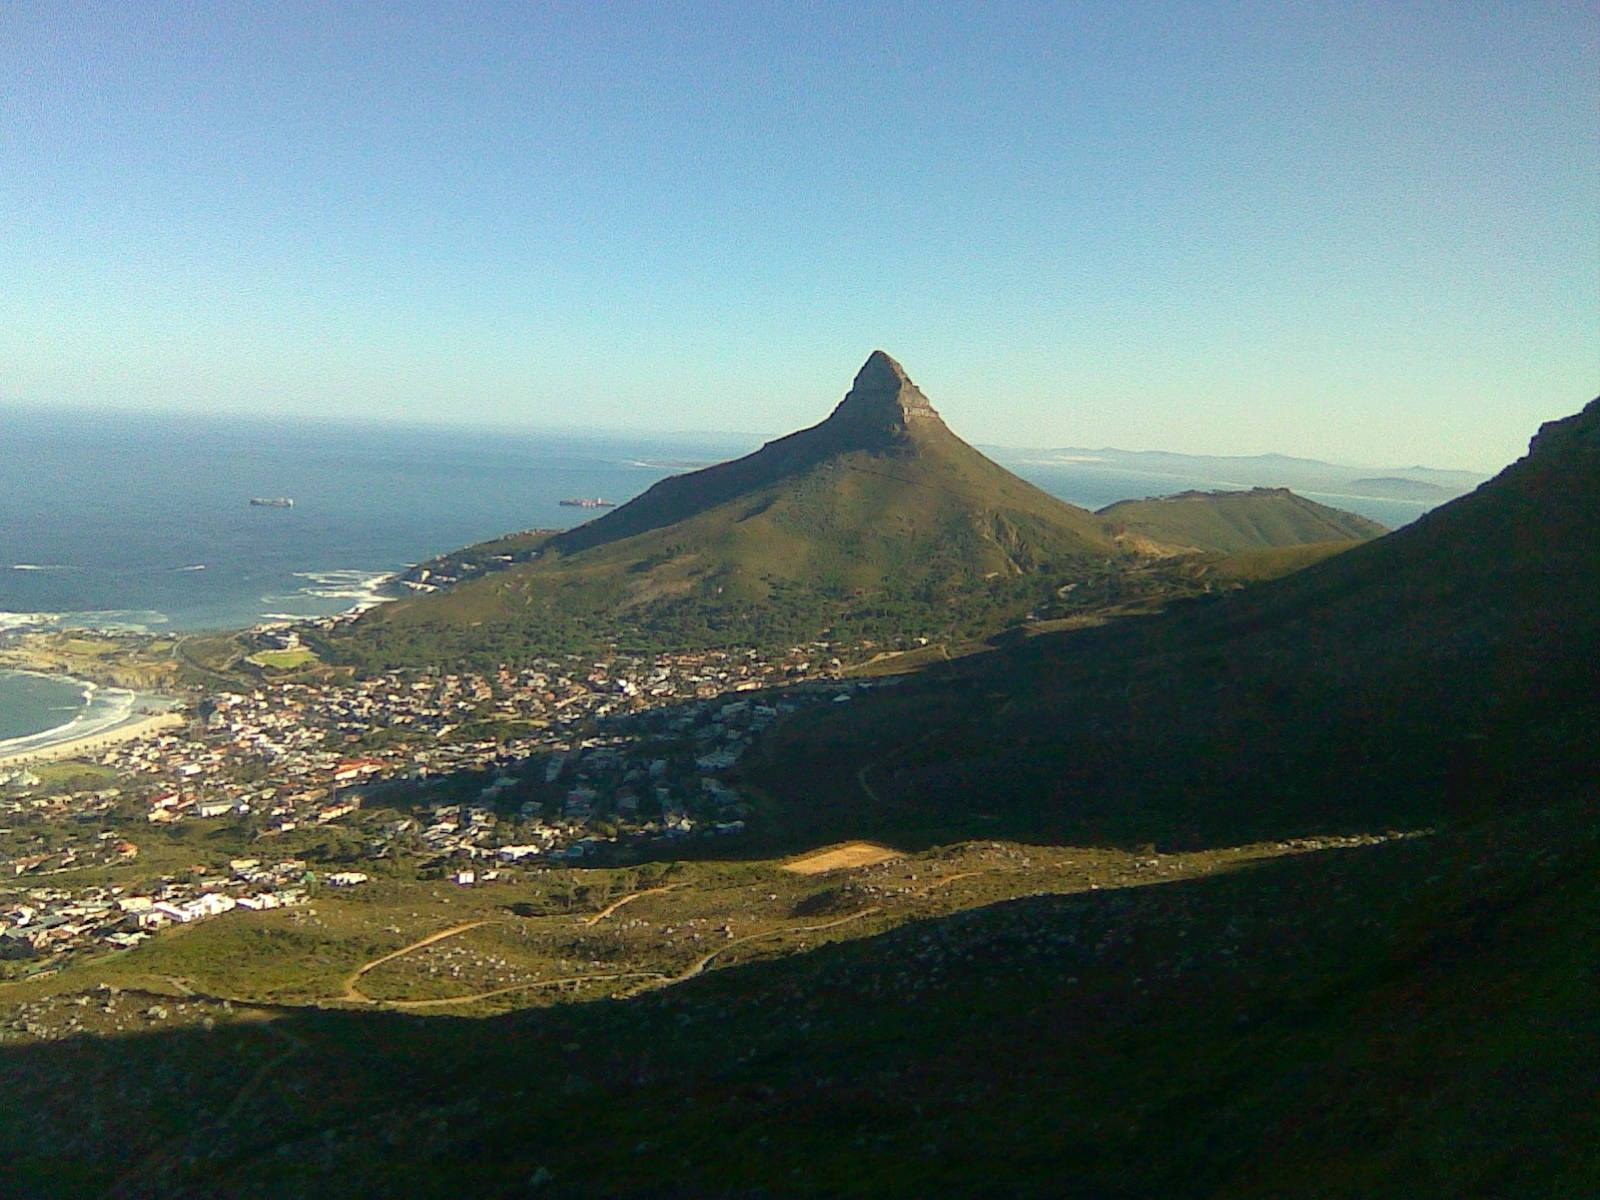 kasteelpoort, Looking towards Lions Head